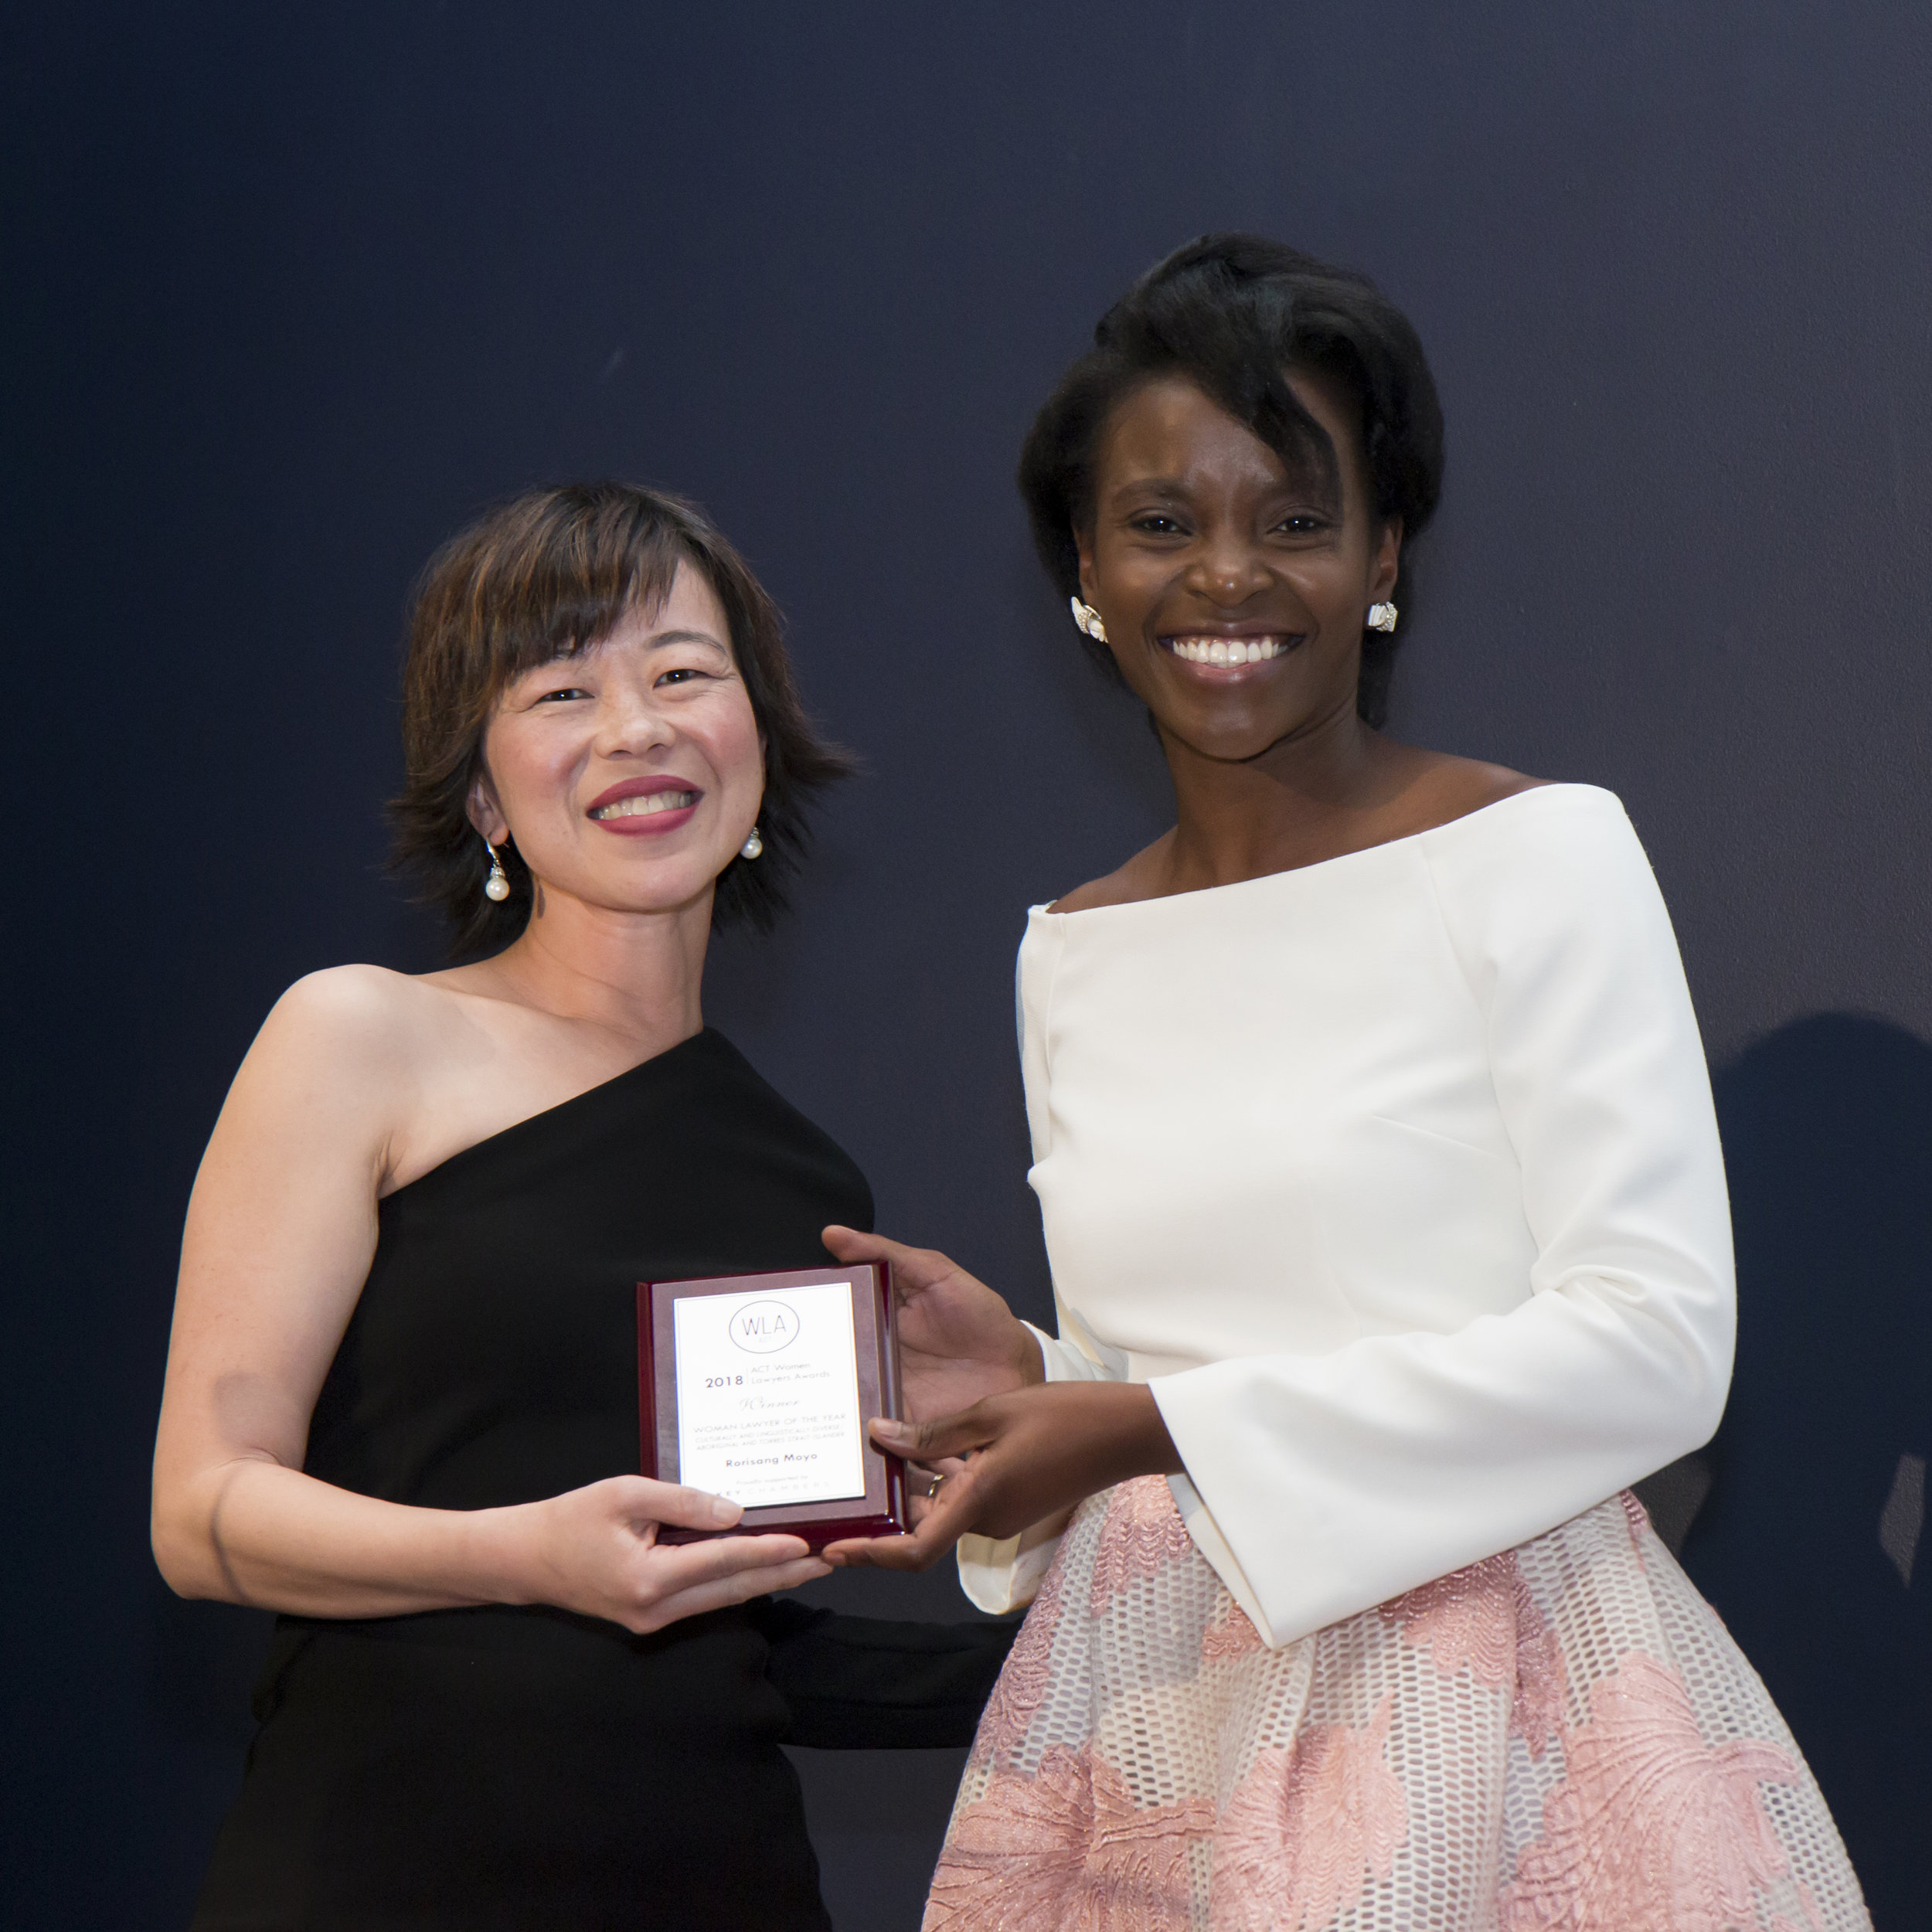 Rorisang Moyo receiving her award from Liz Huang Hughes-Brown, winner of the 2016 CALD or Aboriginal and Torres Strait Islander Woman Lawyer of the Year Award.